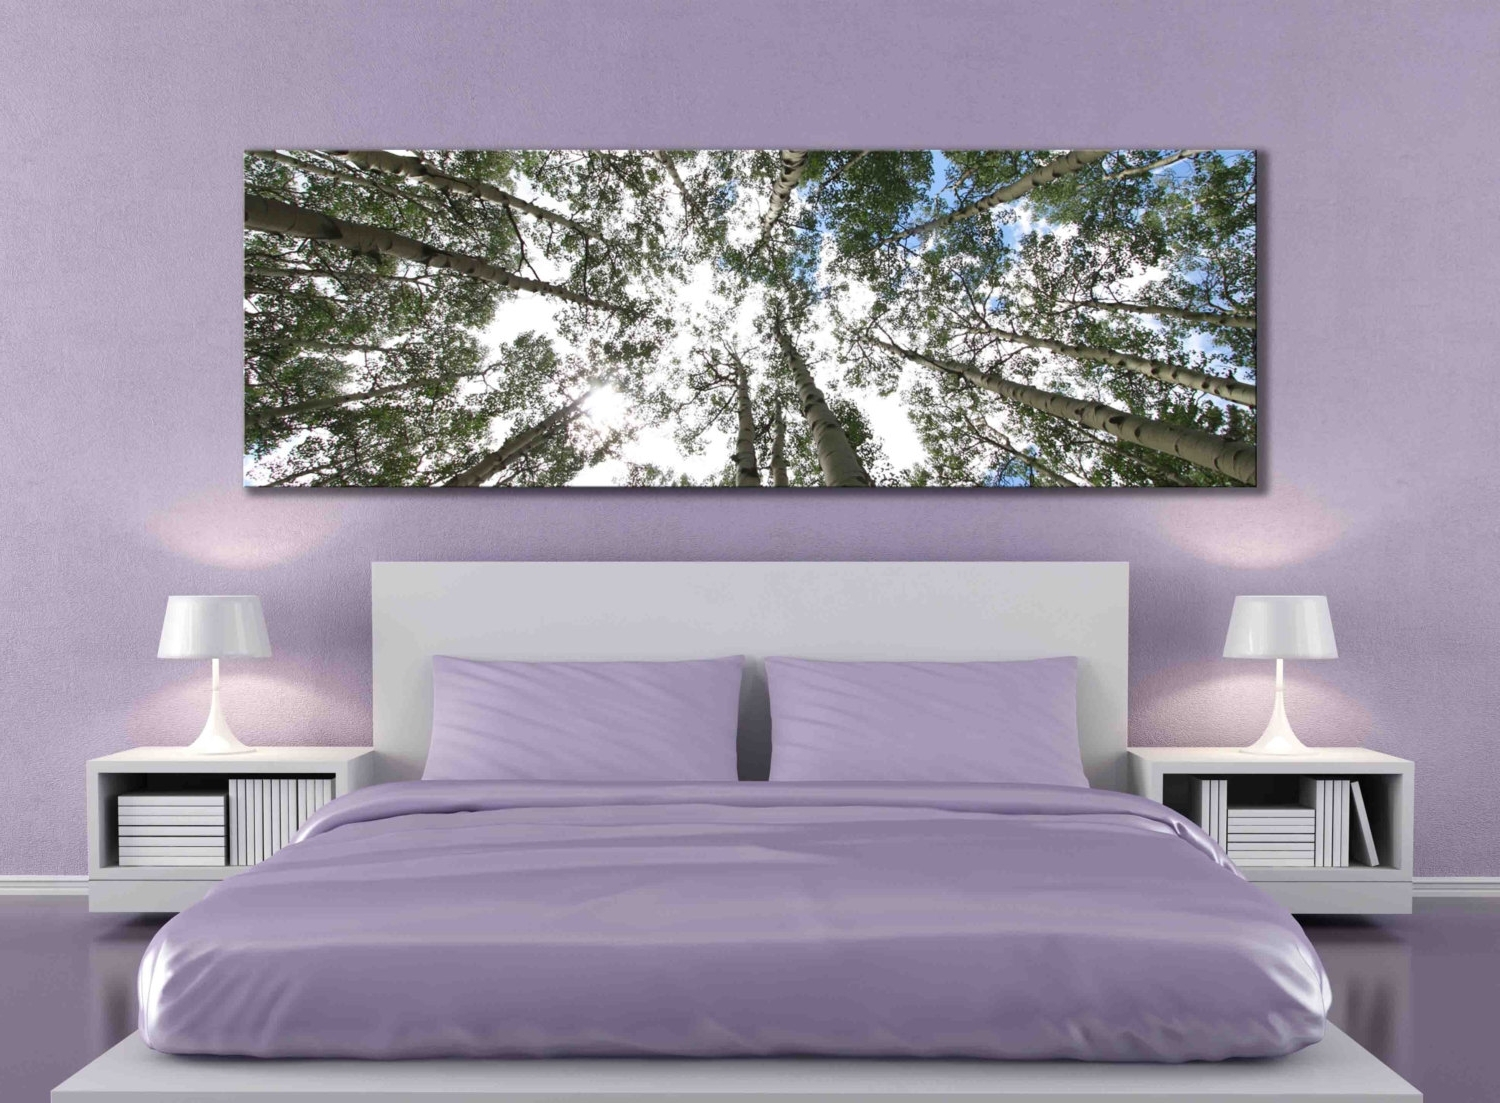 Big Aspen Tree Photograph Large Panoramic Canvas Print, Nature Regarding Latest Aspen Tree Wall Art (View 9 of 15)